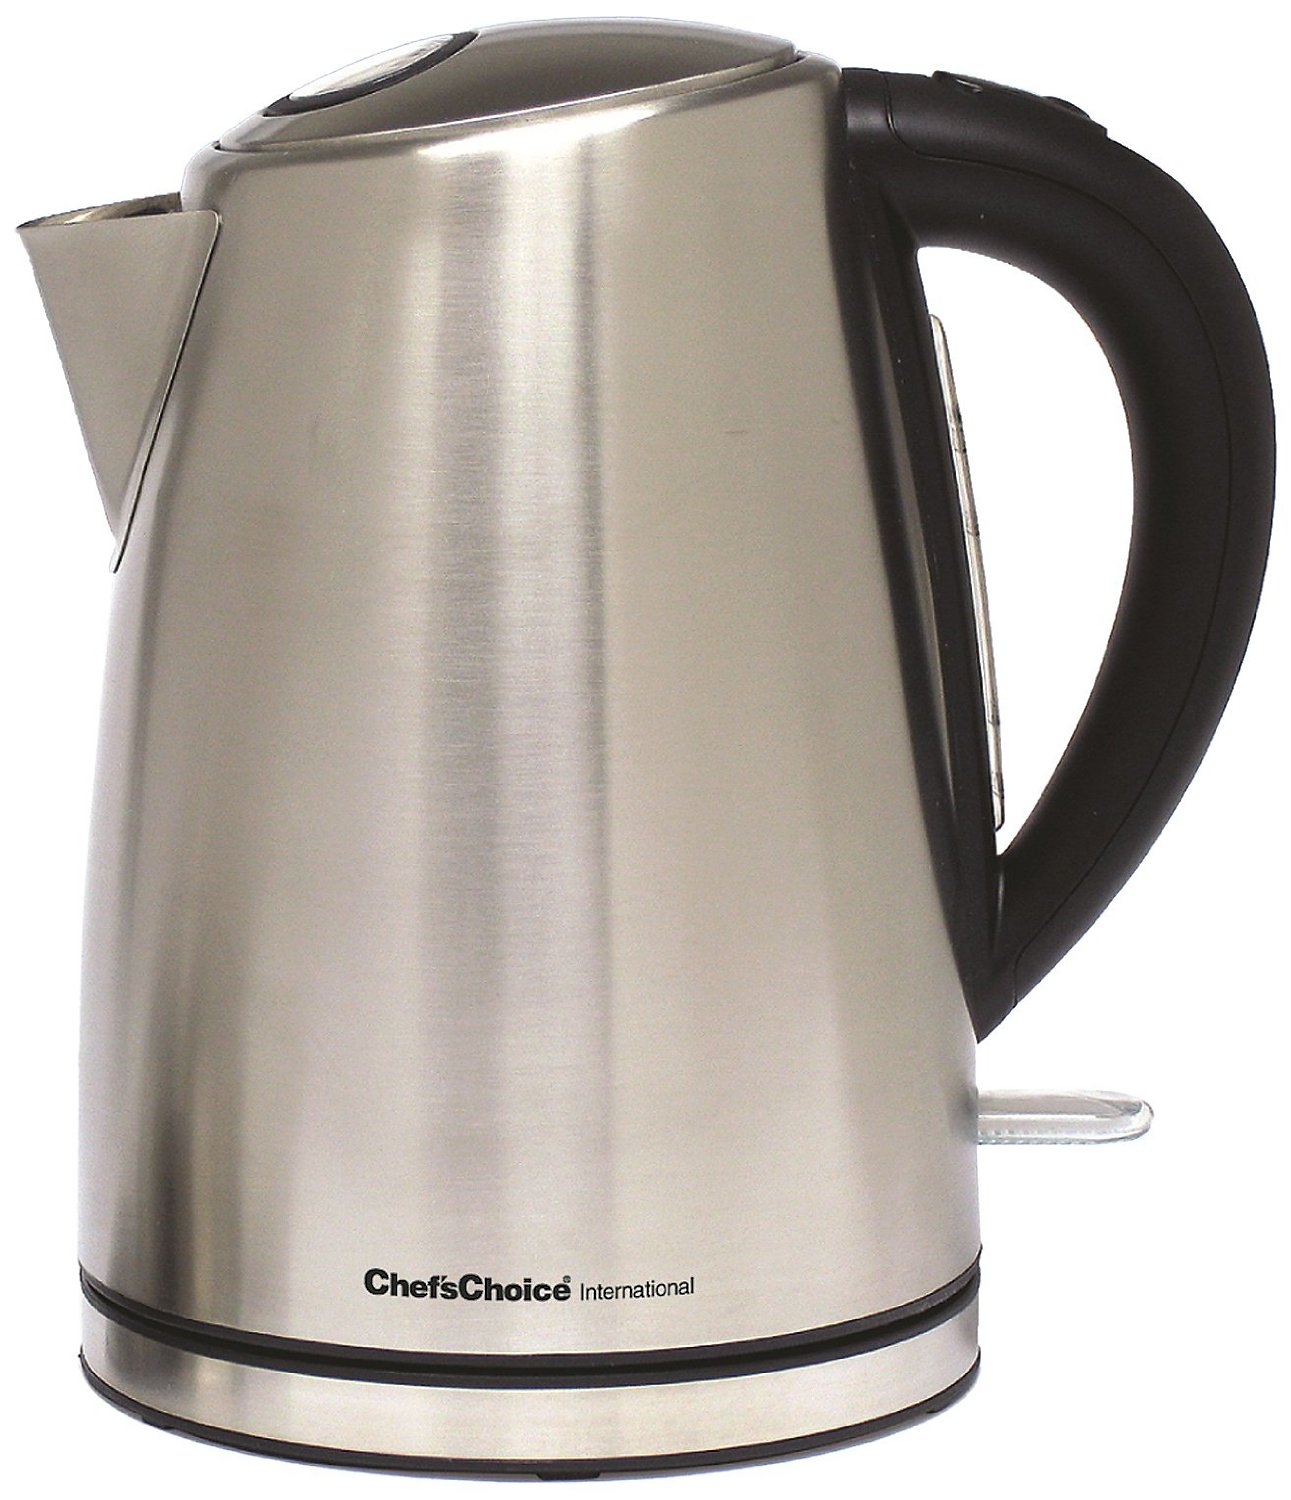 Chef'sChoice® M681 International Cordless Electric Kettle